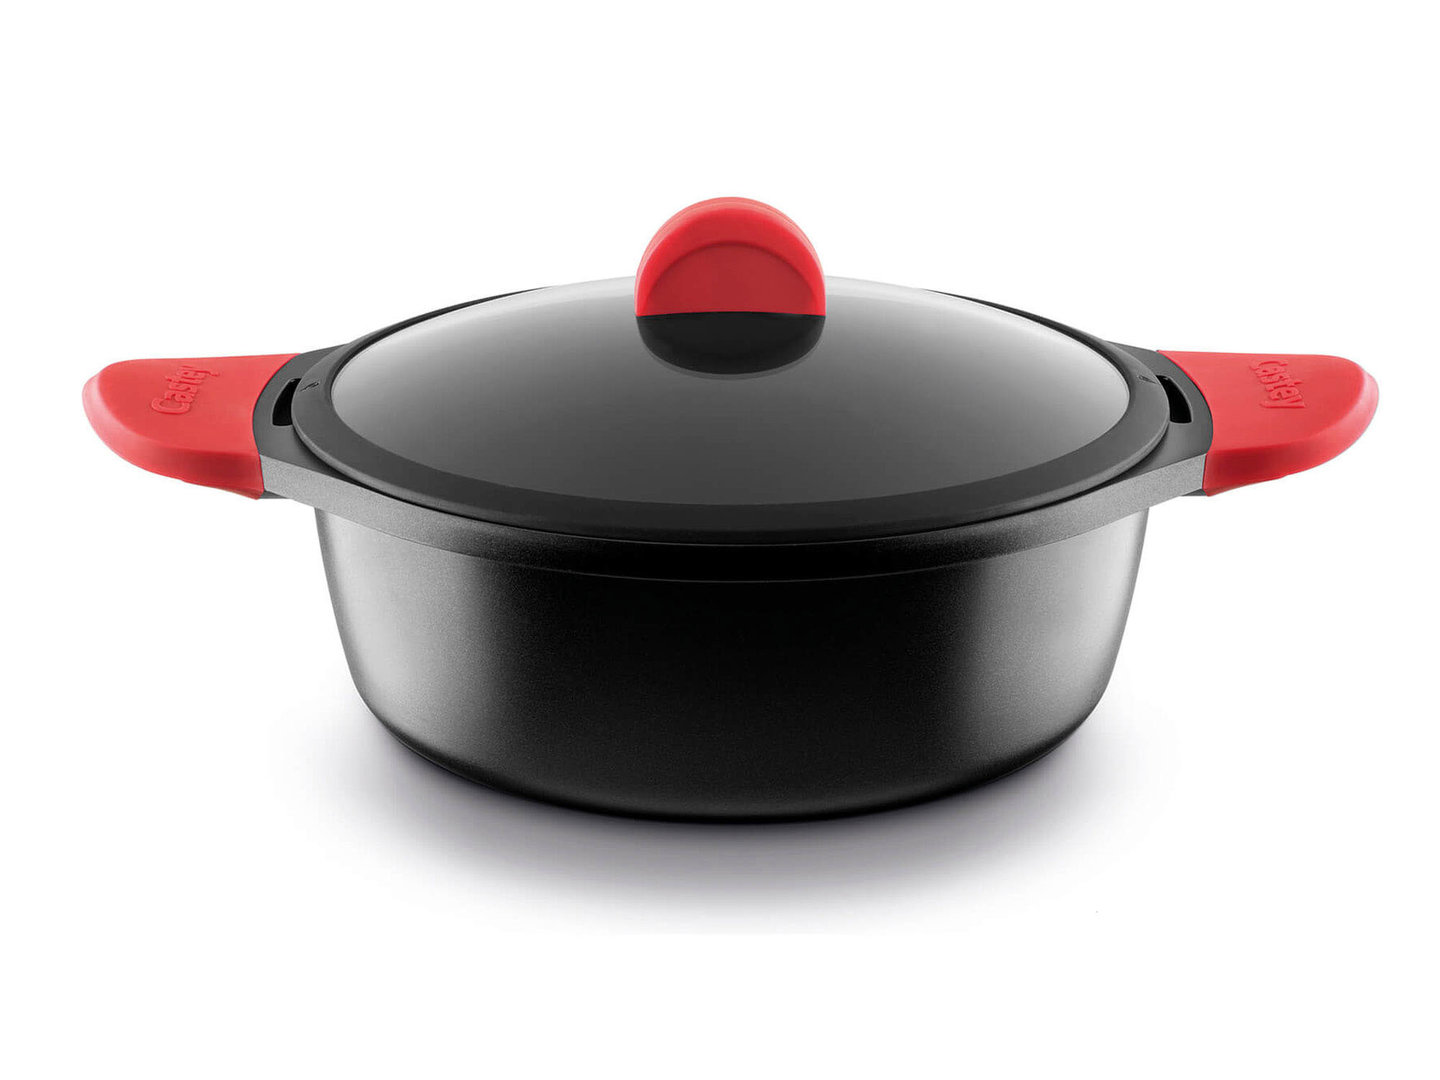 CASTEY cast aluminum casserole 24 cm with lid silicone handles induction